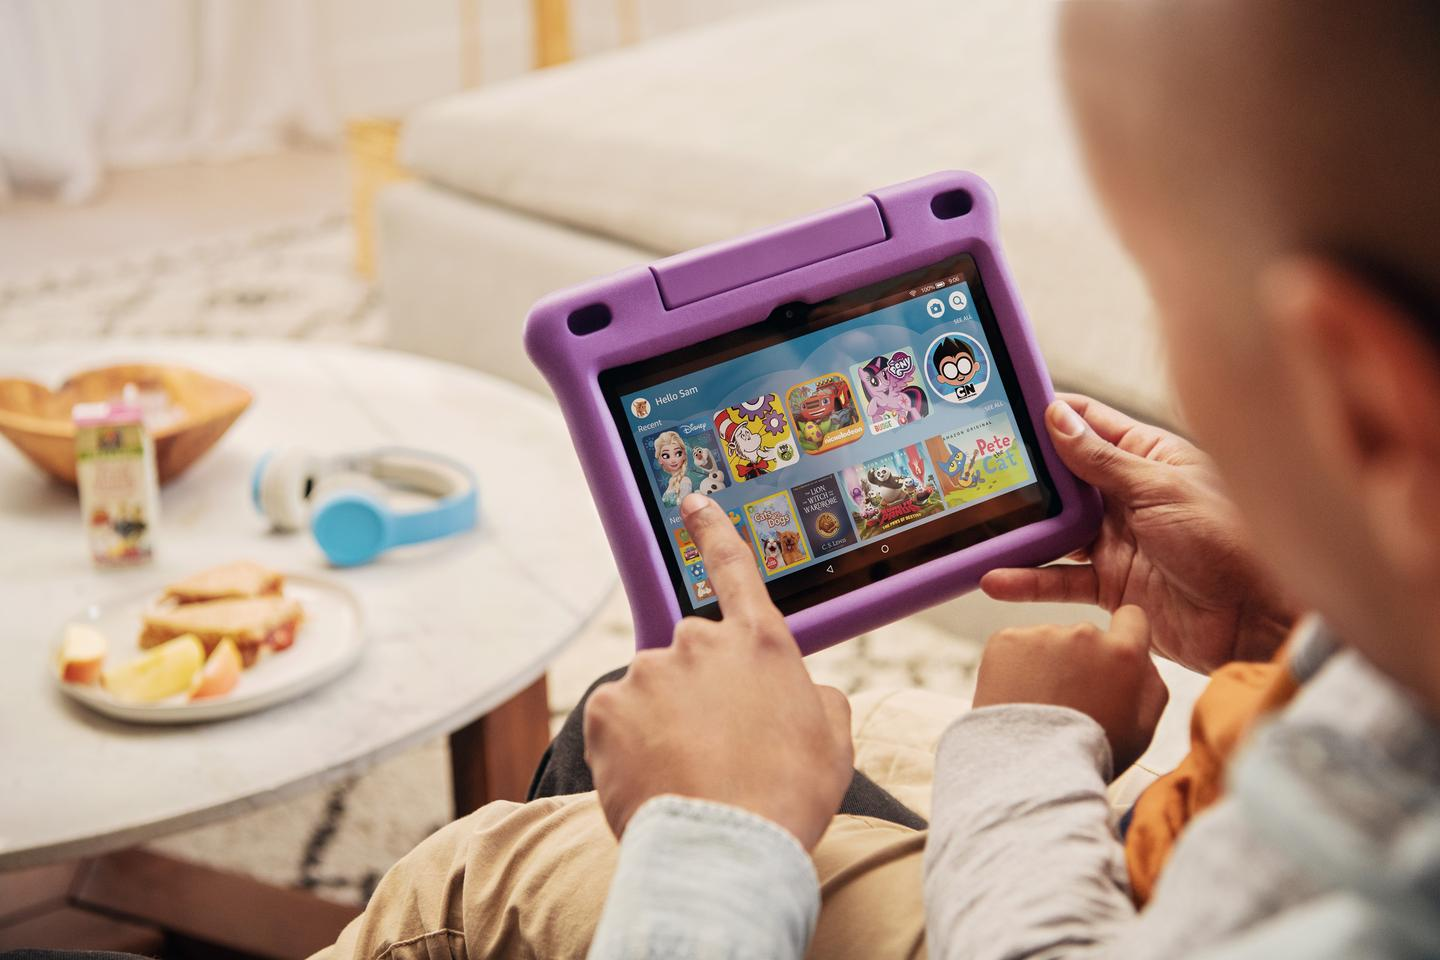 The Fire HD 8 Kids Edition comes with a colorful protective case with built-in kickstand